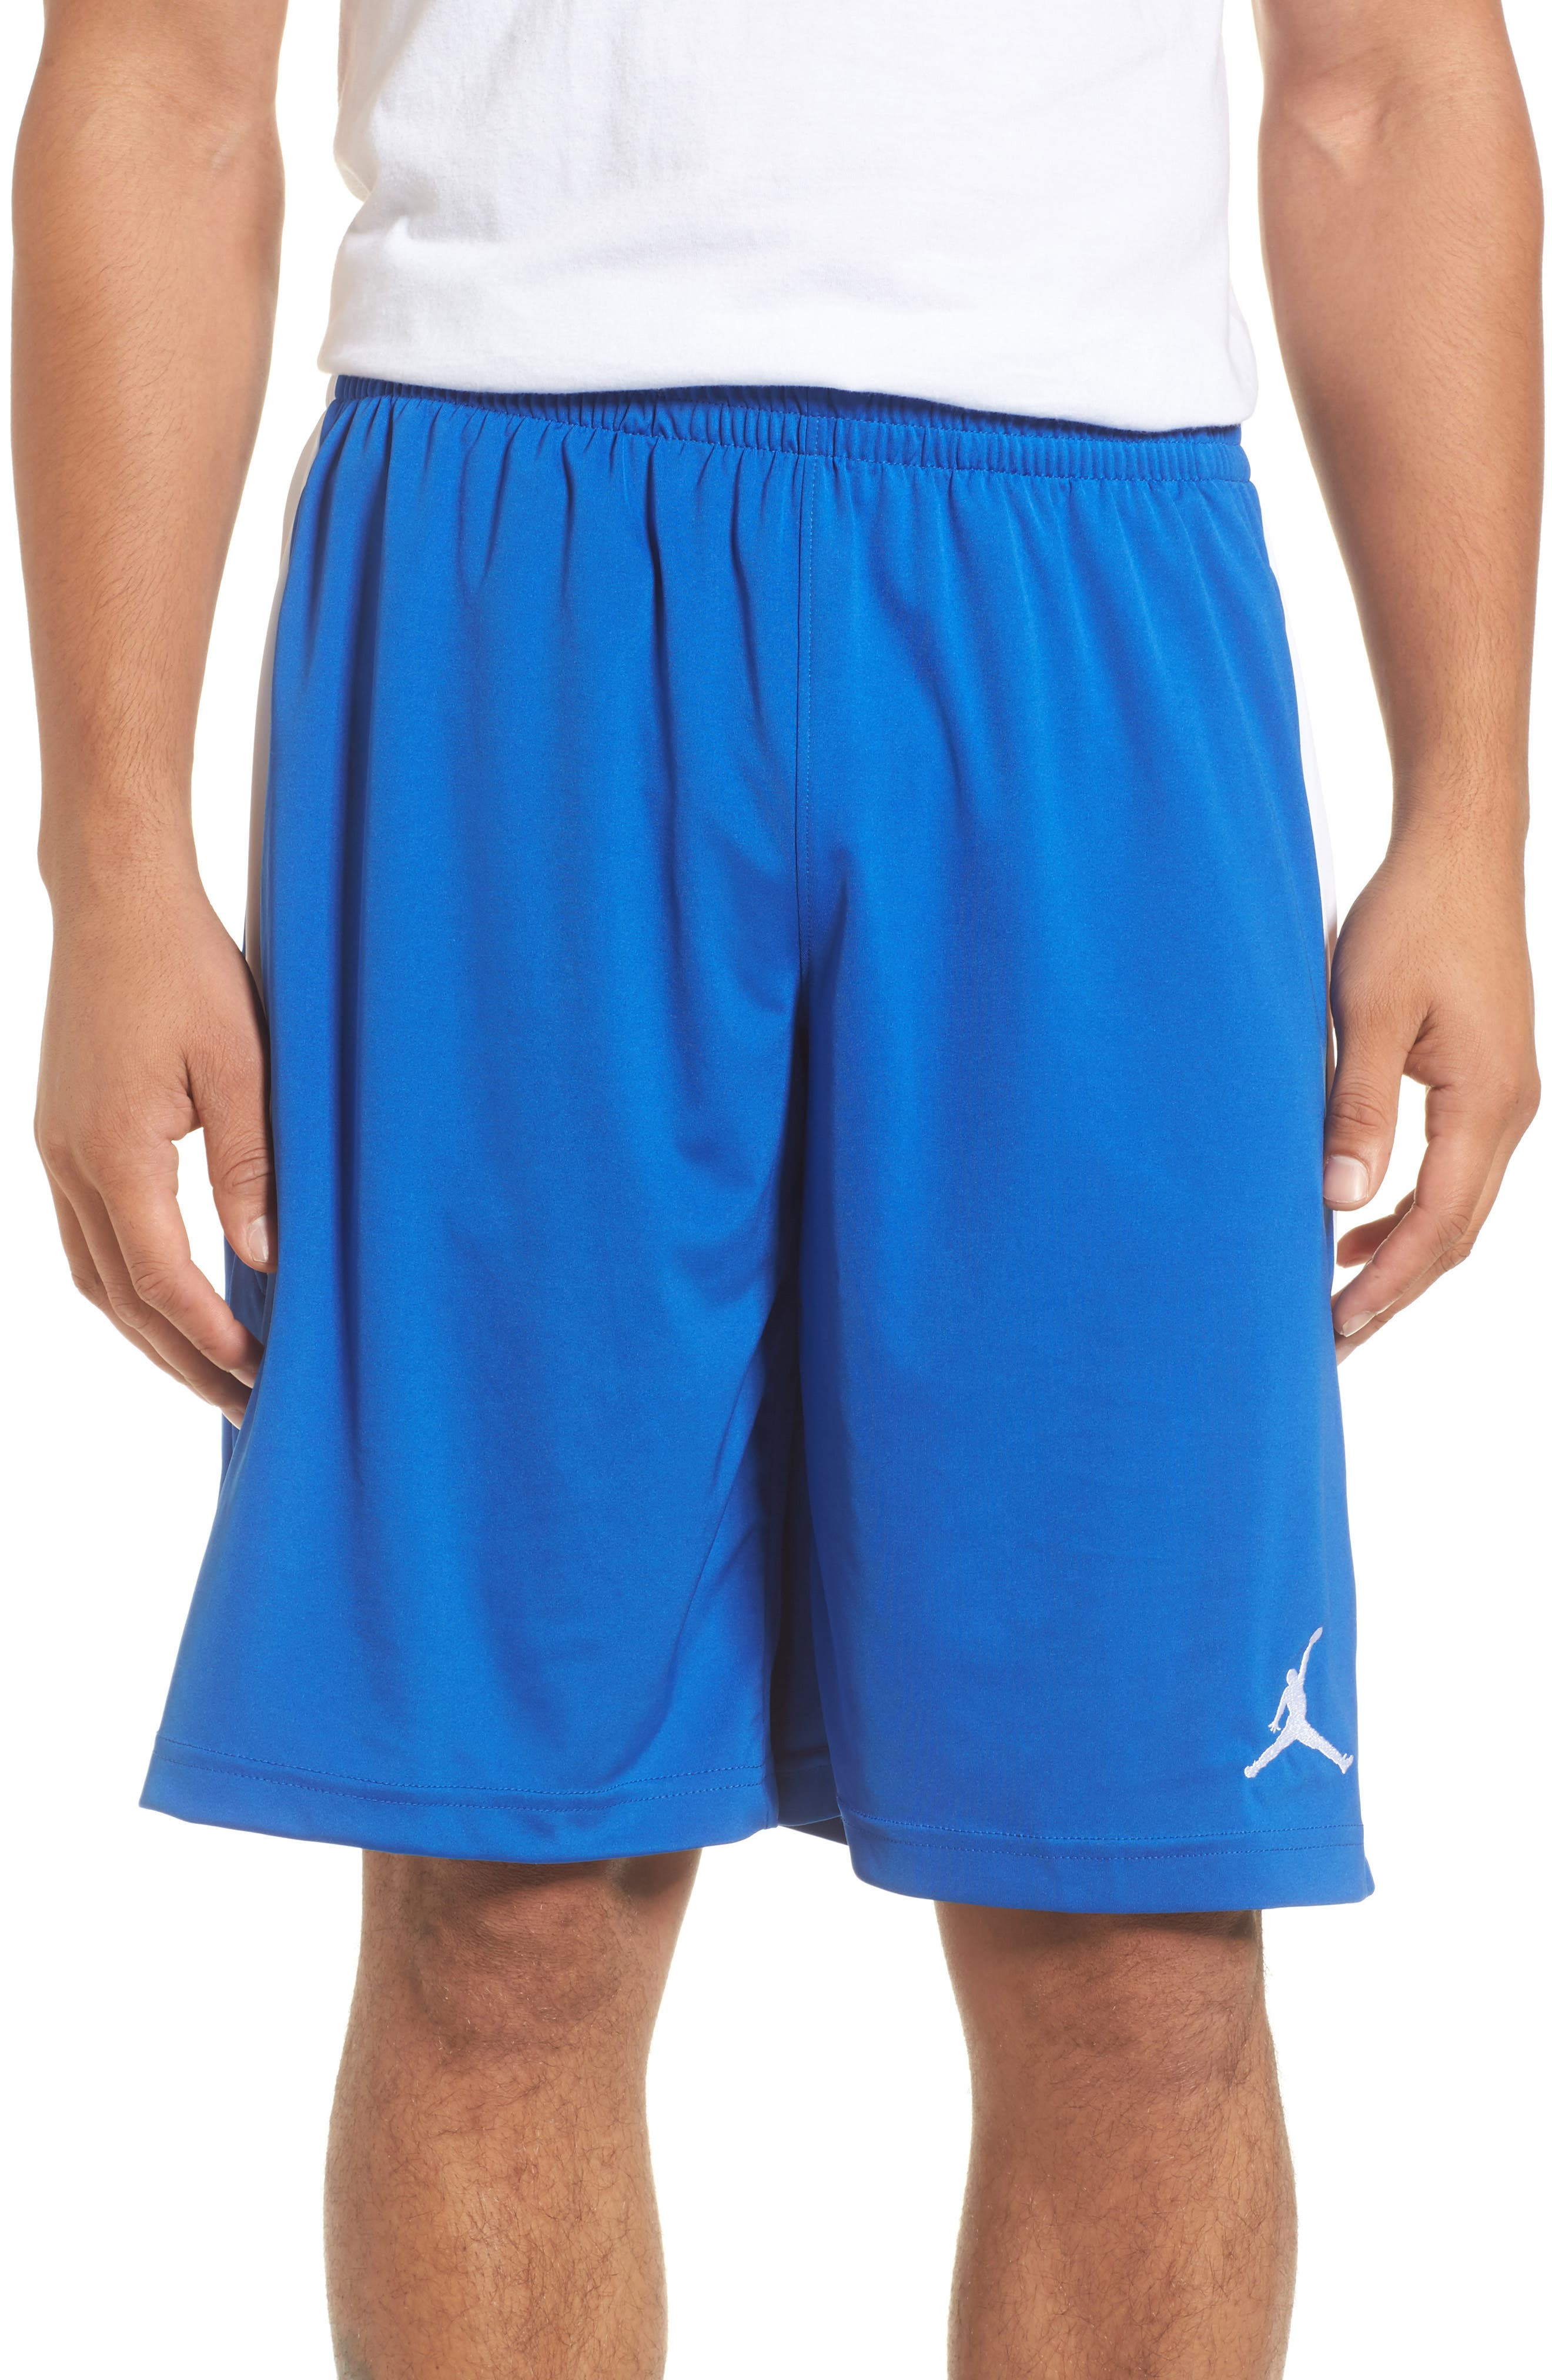 23 Alpha Dry Knit Shorts,                         Main,                         color, Game Royal/ White